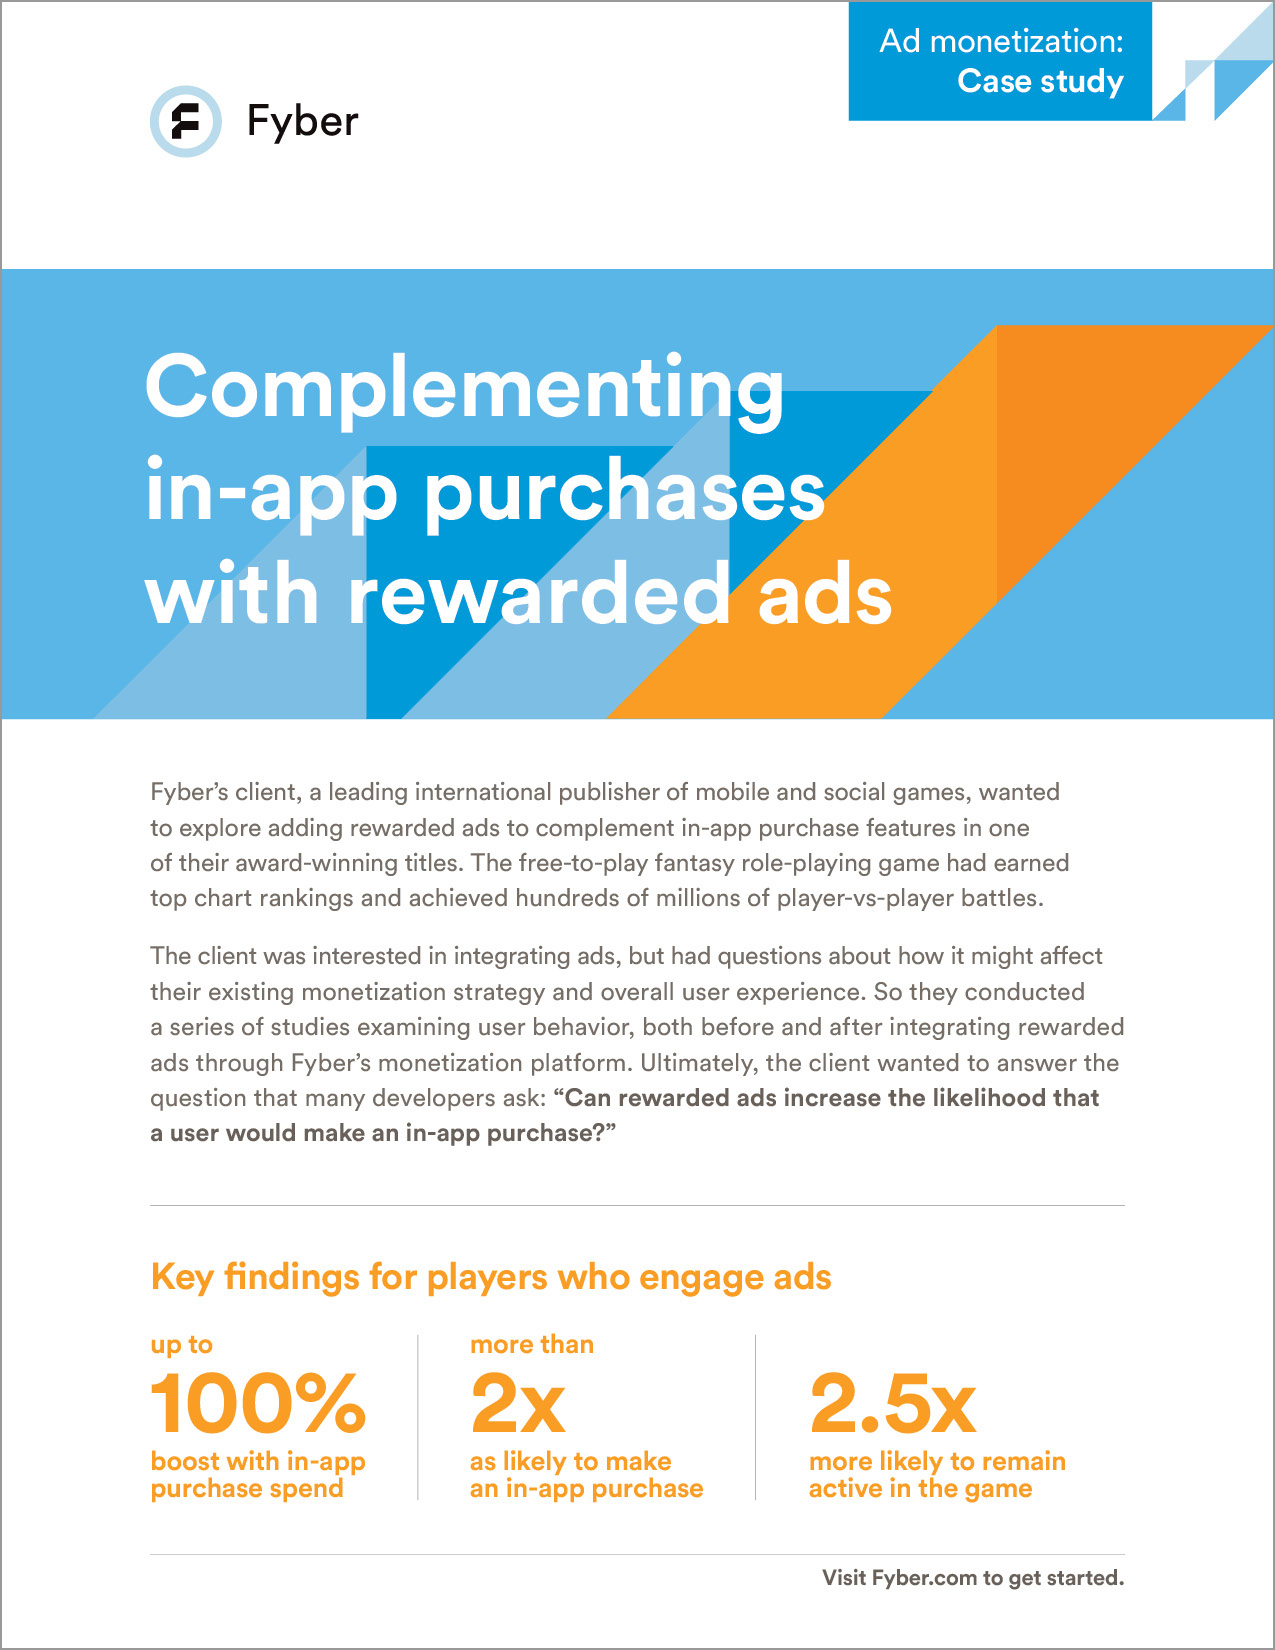 Complementing In-app Purchases with Rewarded Ads